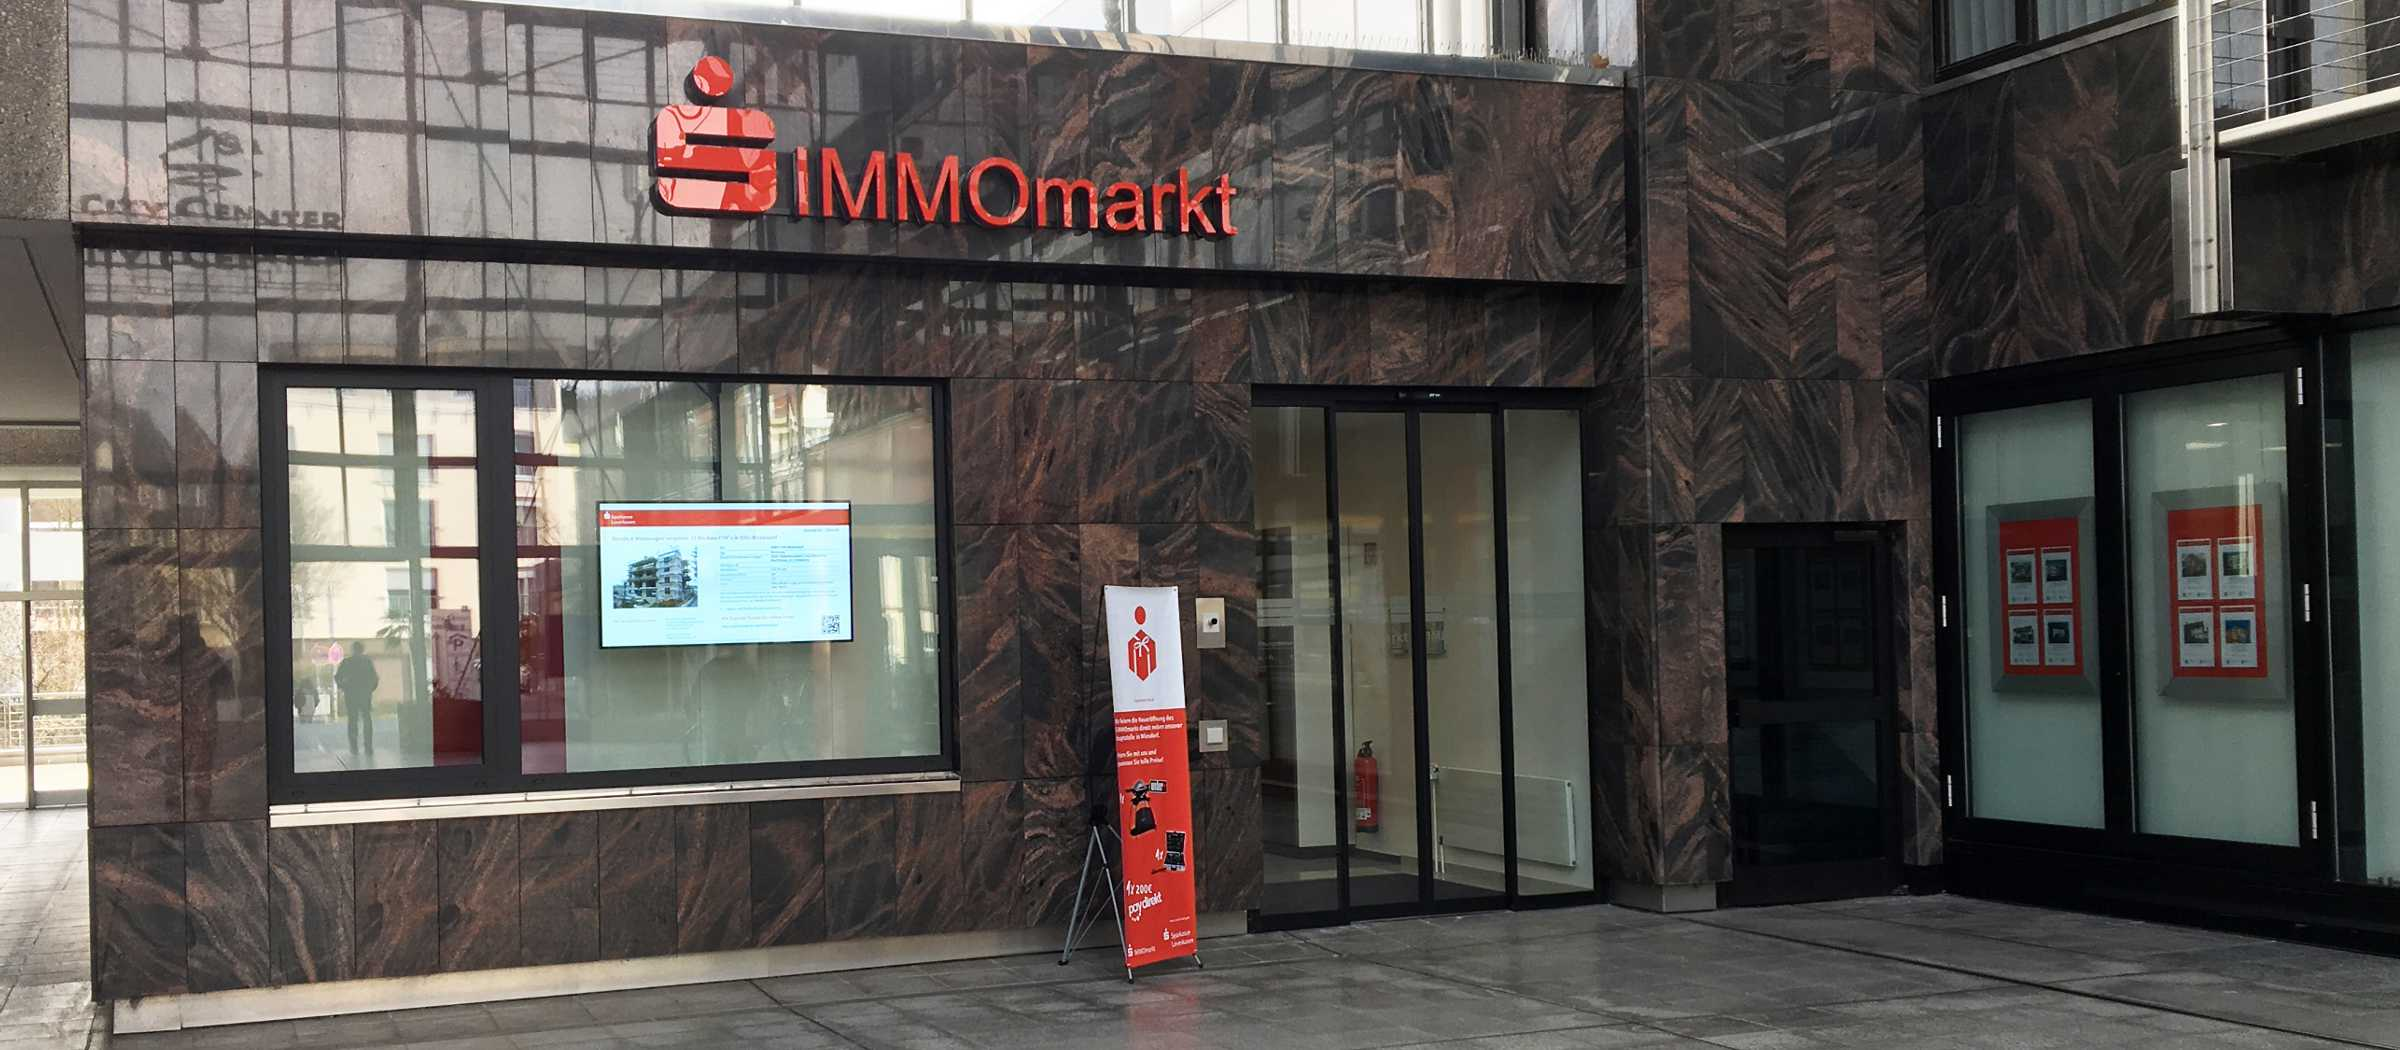 Sparkasse Immobiliencenter S-IMMOmarkt